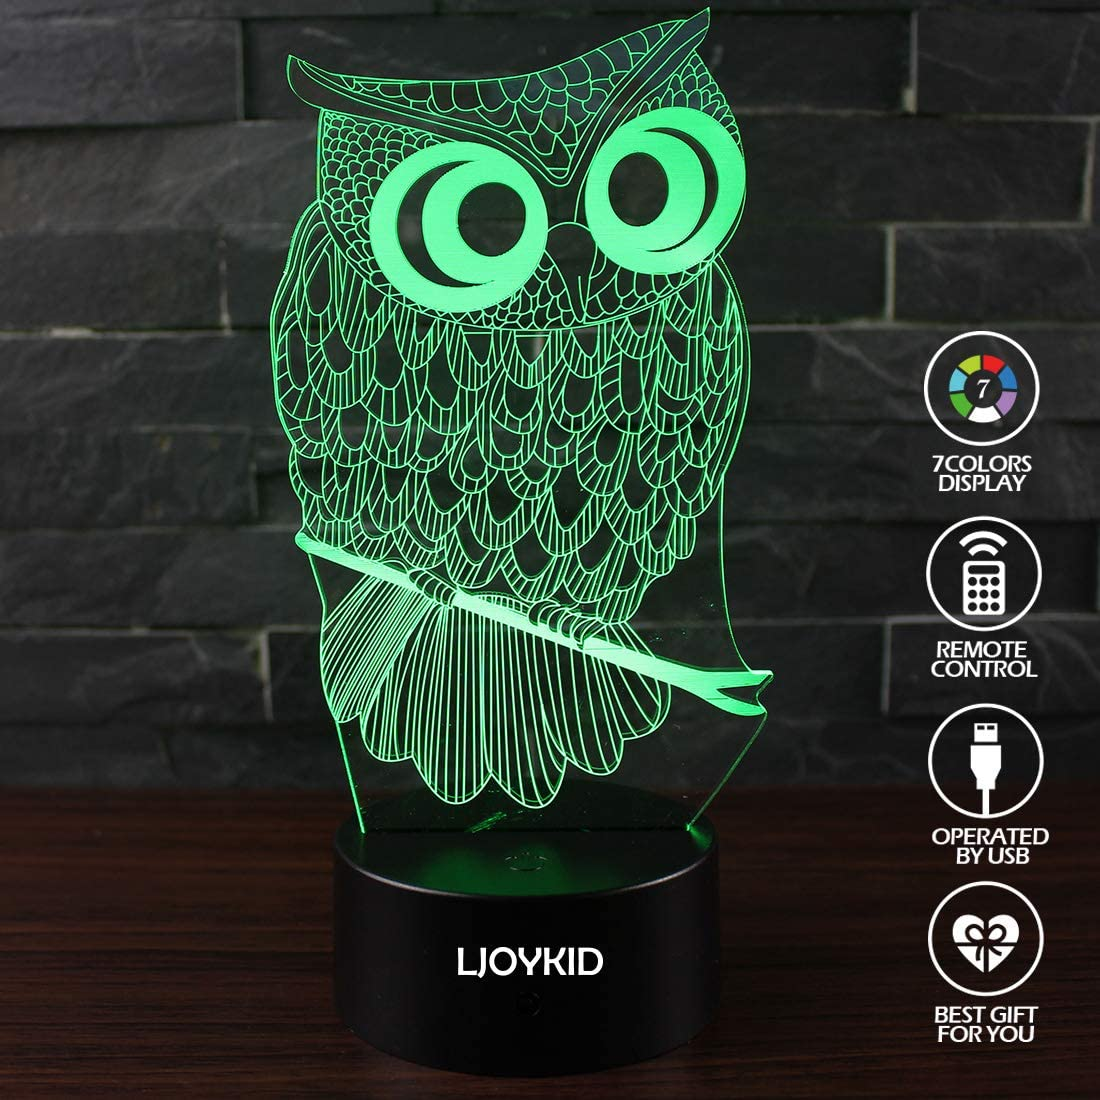 3D Led Night Light Lamps Butterfly2 Optical Illusion 7 Colors Touch Table Desk Visual Lamp with Remote Control for Gifts for Children Kids